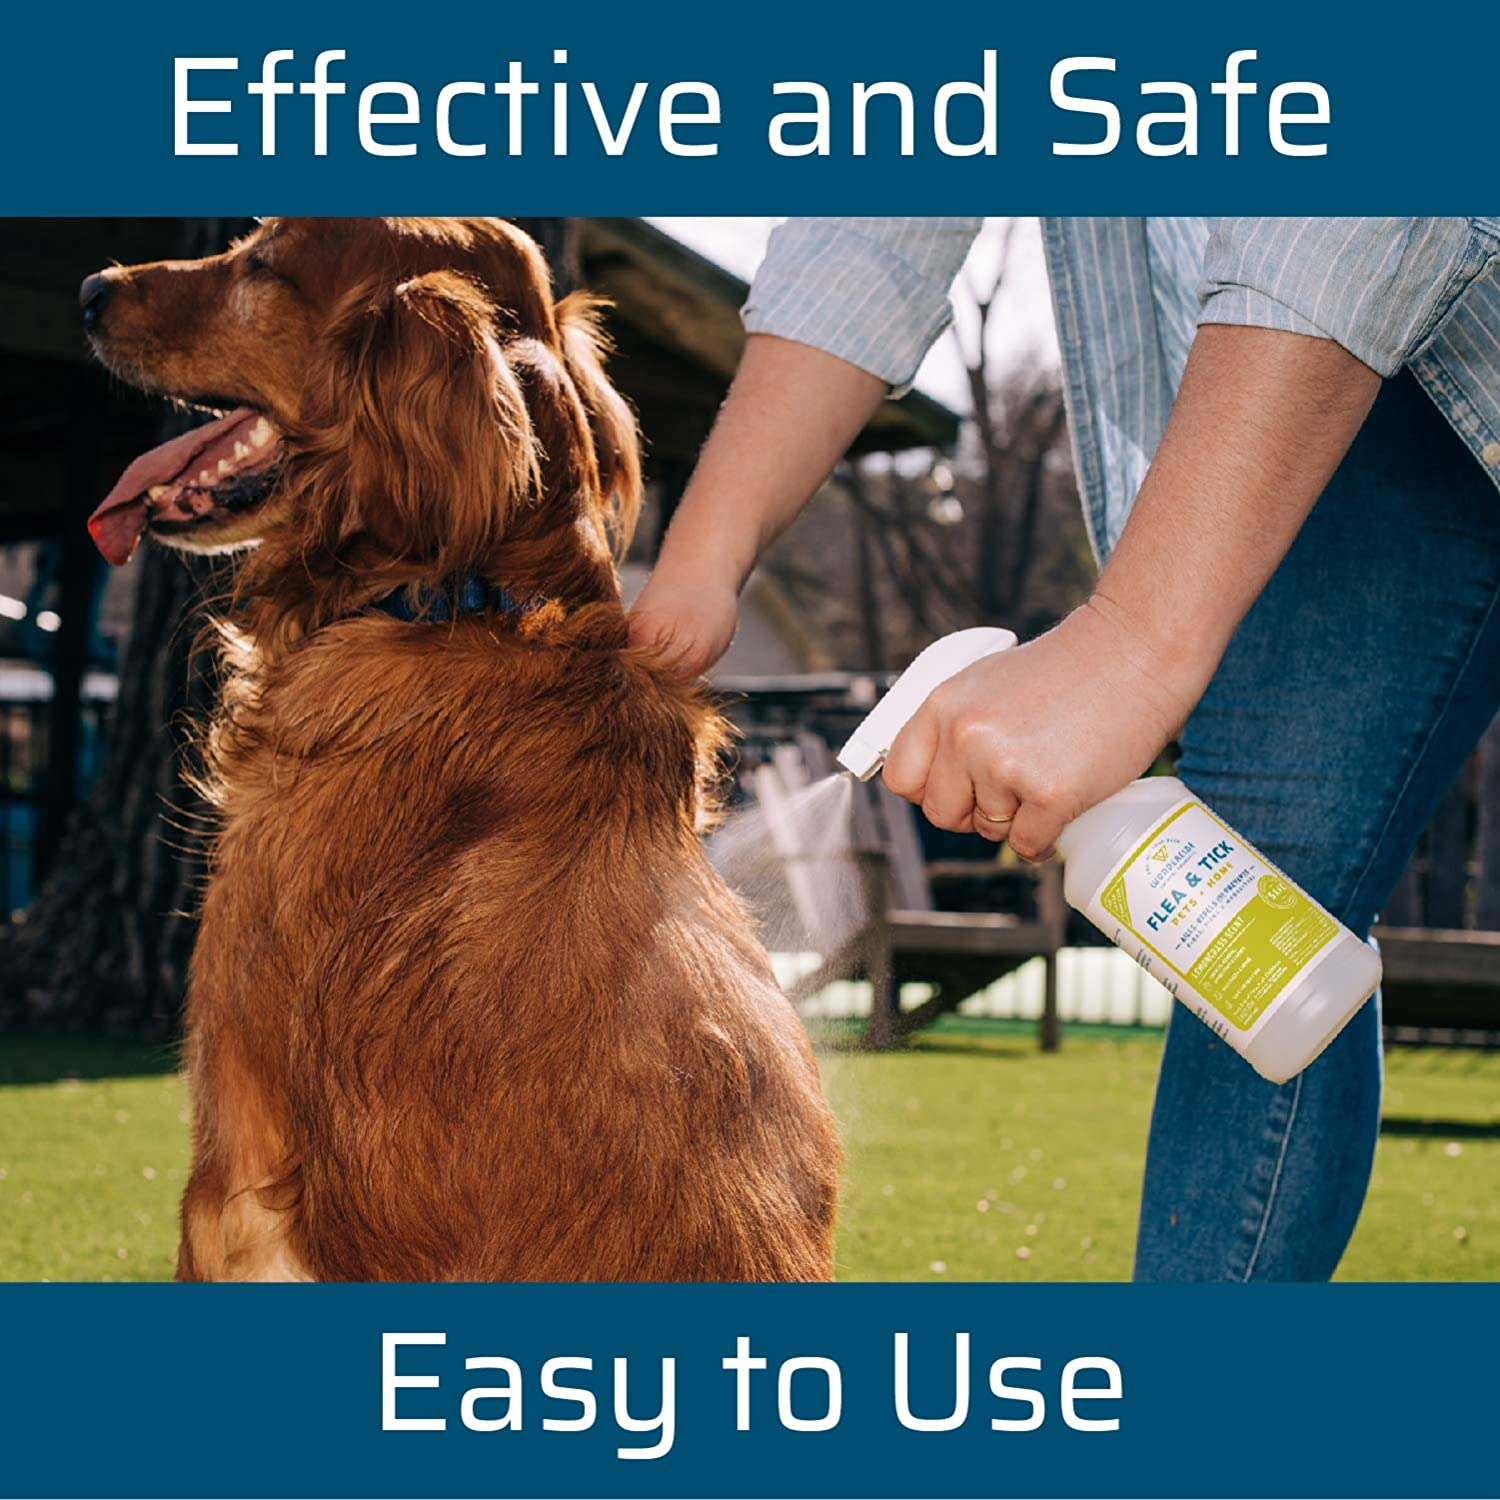 Amazon Com Wondercide Natural Products Flea Tick And Mosquito Control Spray For Dogs Cats And Home Flea And Tick Killer Prevention Treatment Eco Friendly And Family Safe 32 Oz Lemongrass Pet Supplies